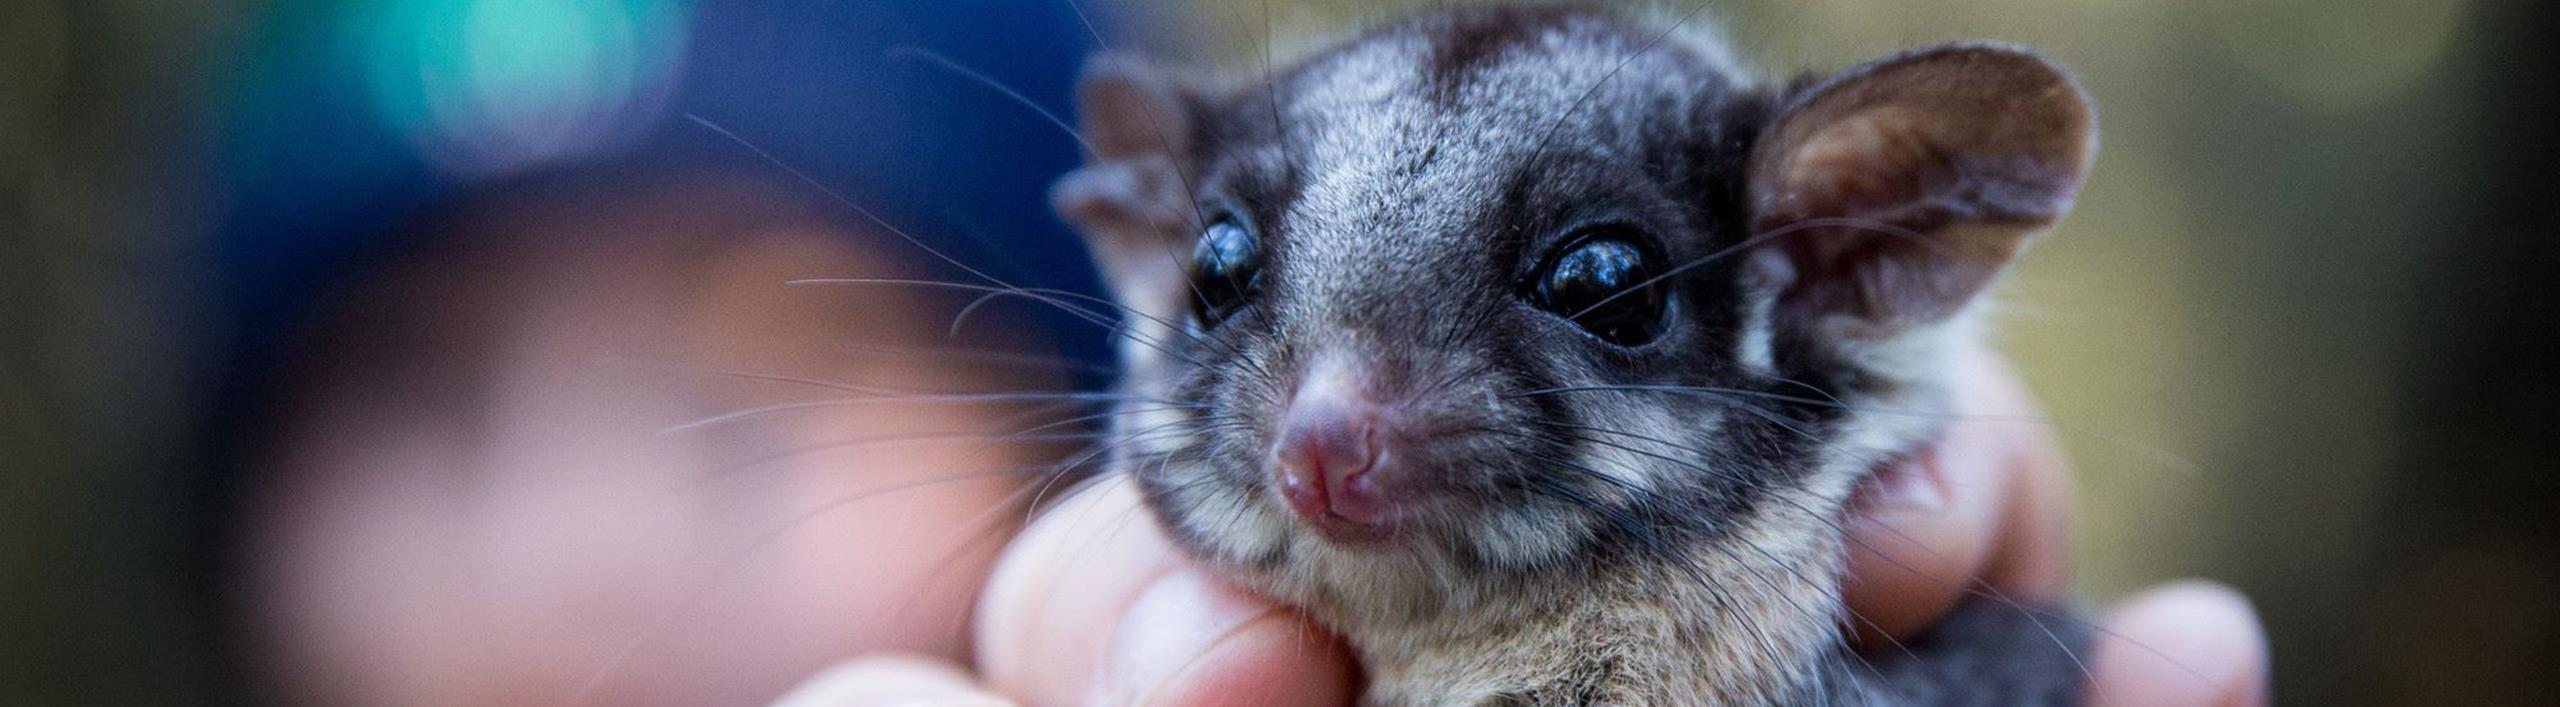 Leadbeater's Possum being held up to the camera.